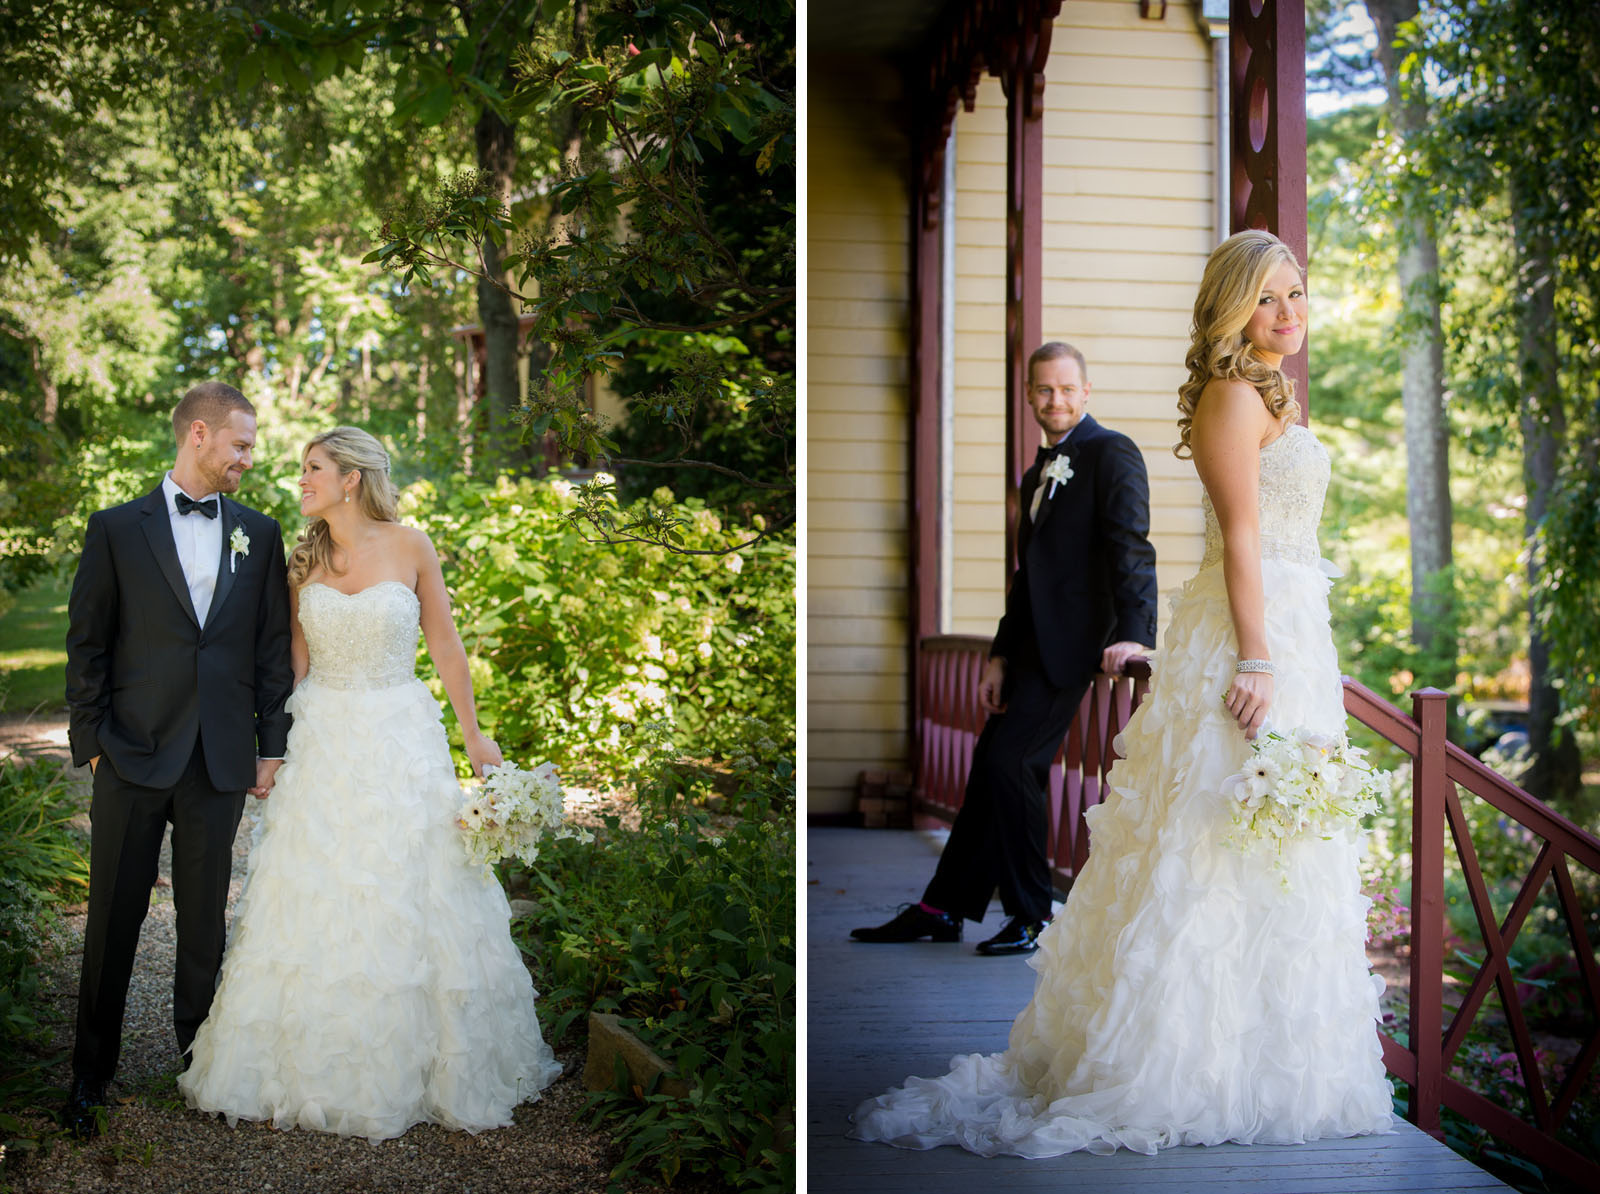 Grooms wedding tux by MySuitNYC, Bride's wedding dress by Martina Liana